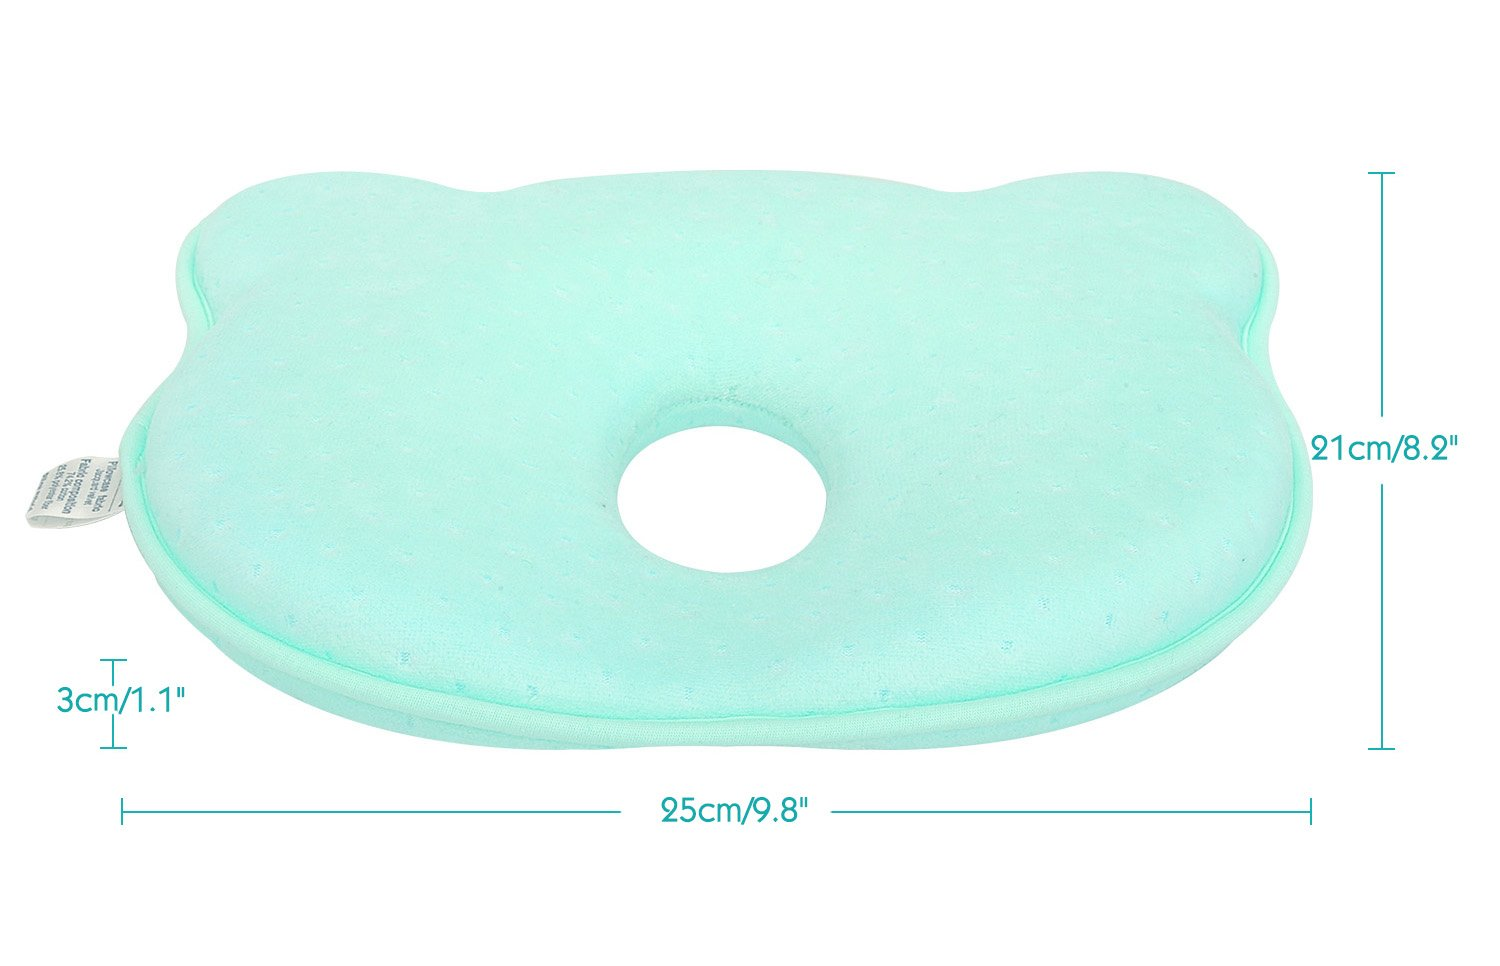 Bear Pink Memory Foam Protective Head Shaping Pillow and Soft Velvet Pillowcase for Baby Newborn Infant Toddler Kids Zooawa Baby Pillow